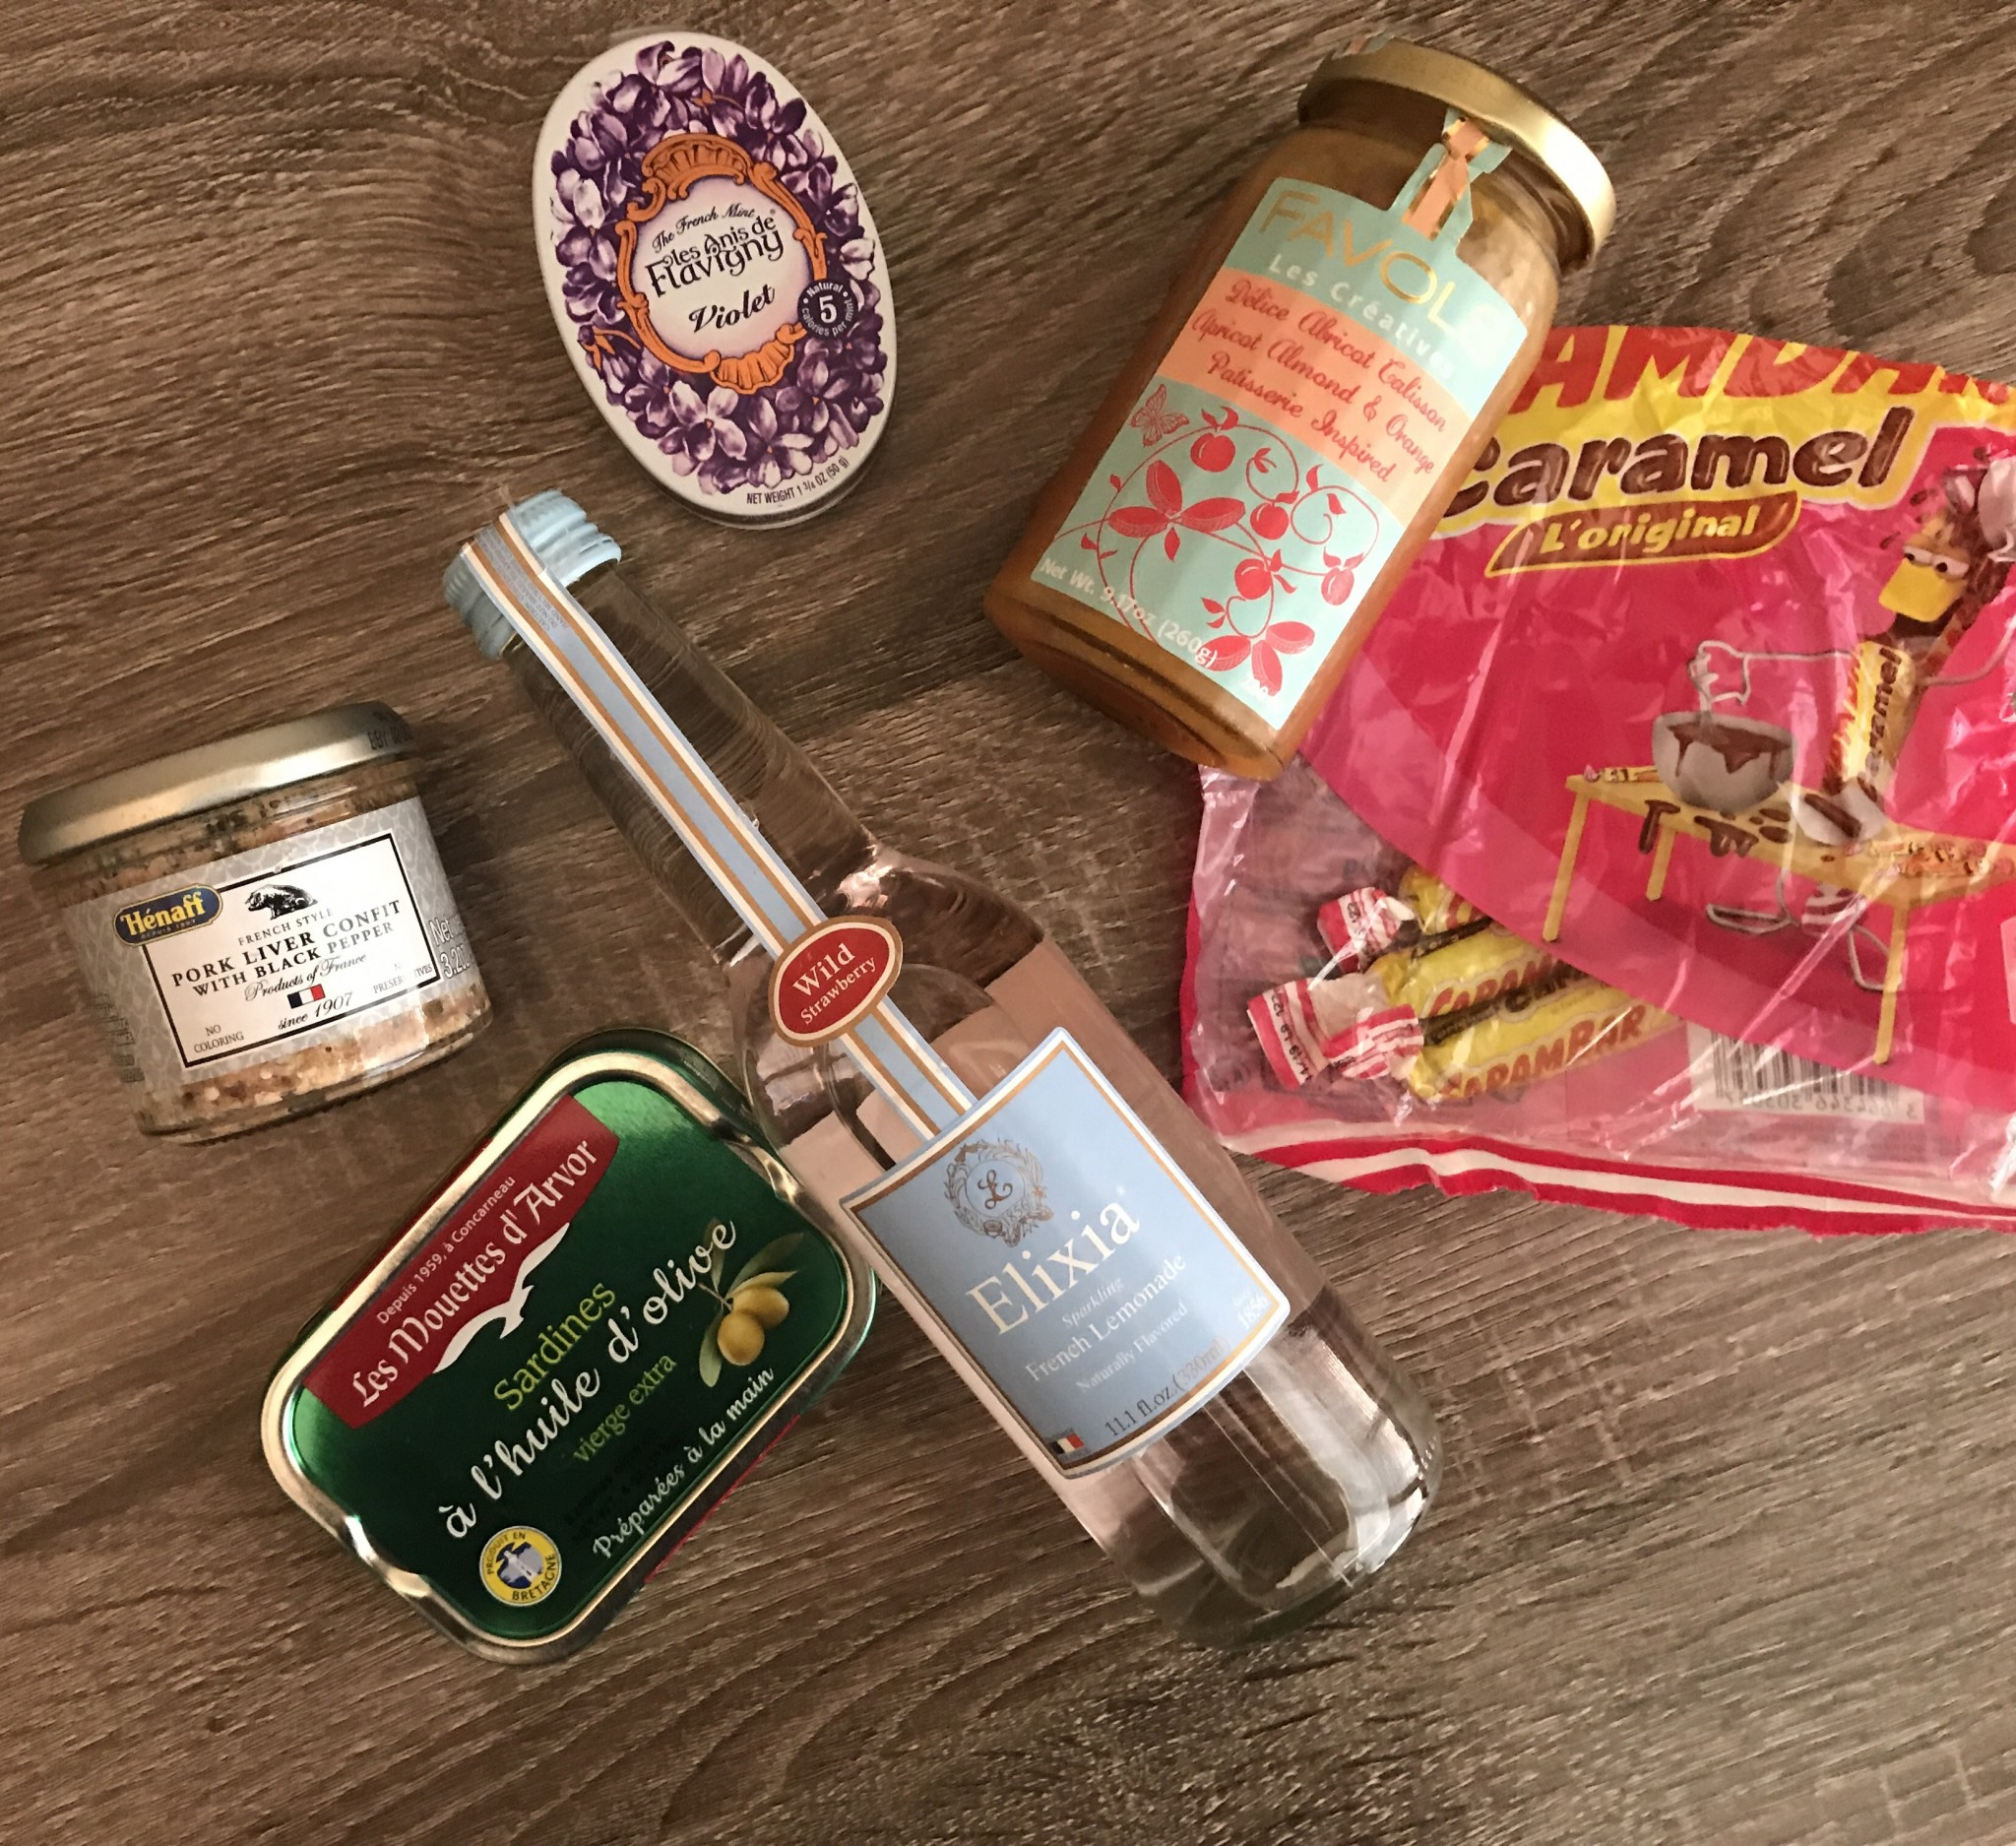 Goodies from the French, Food & Drink Federation